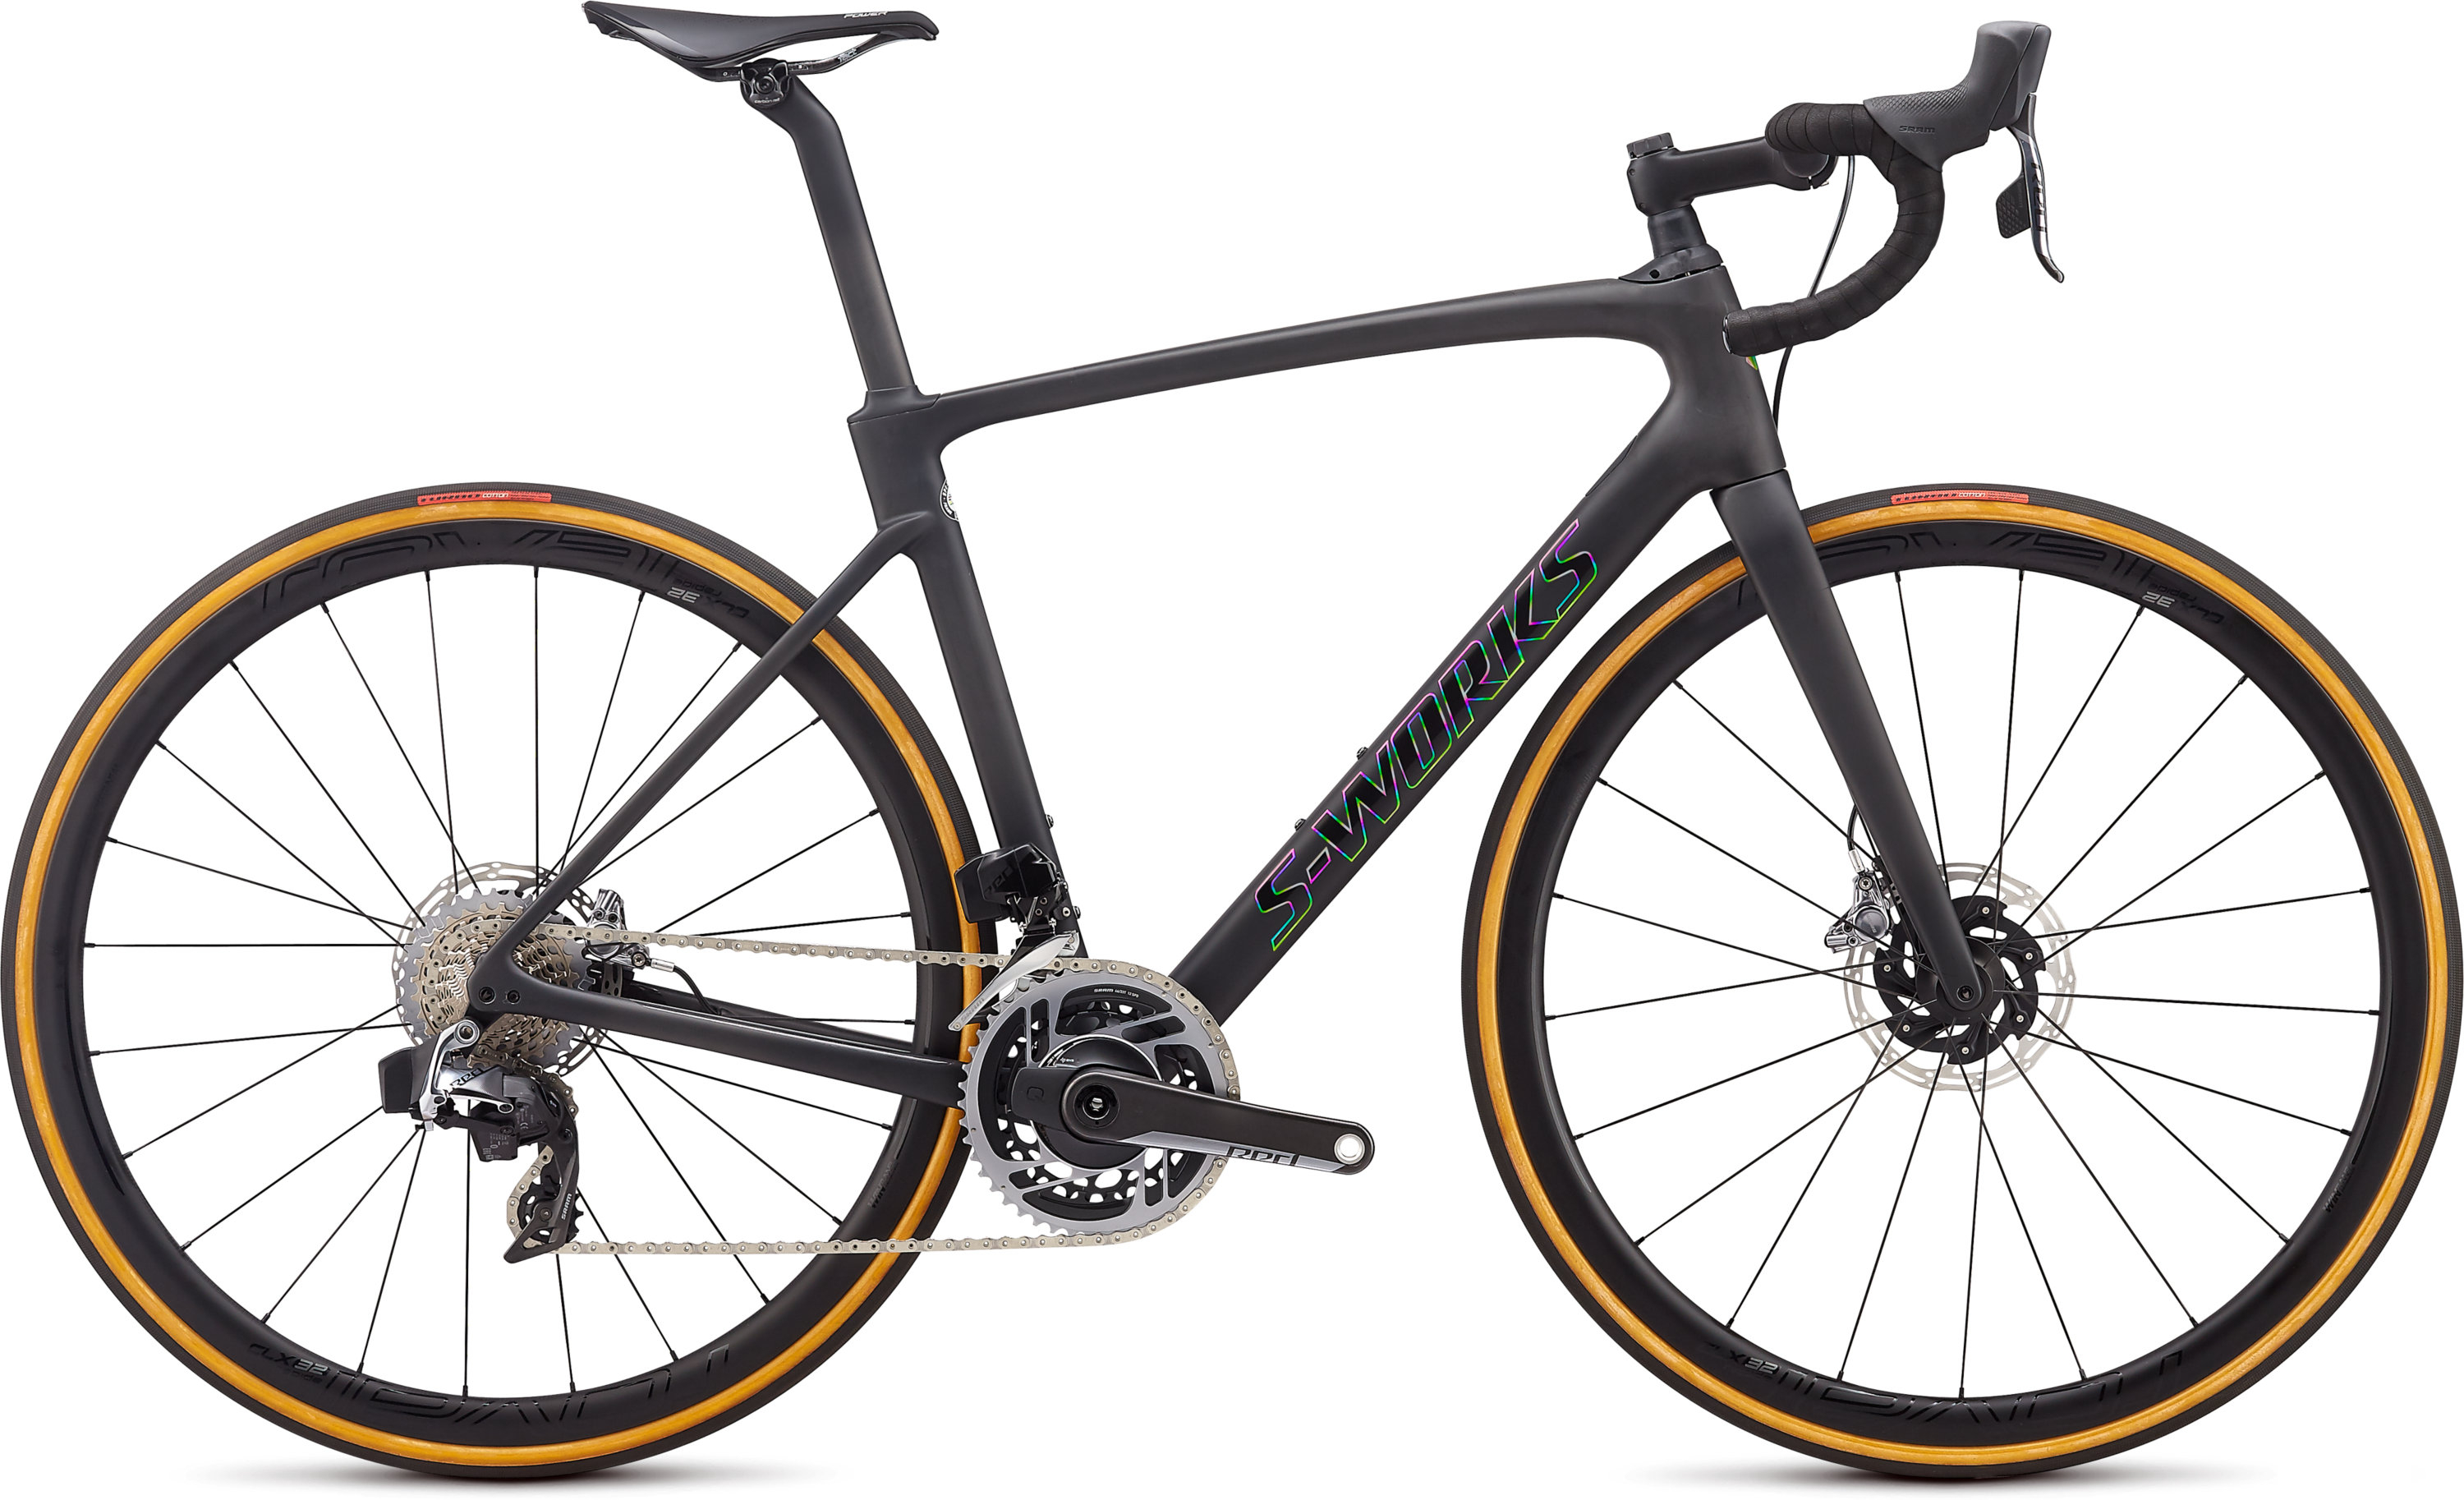 2020 Specialized S Works Roubaix Sram Red Etap Axs